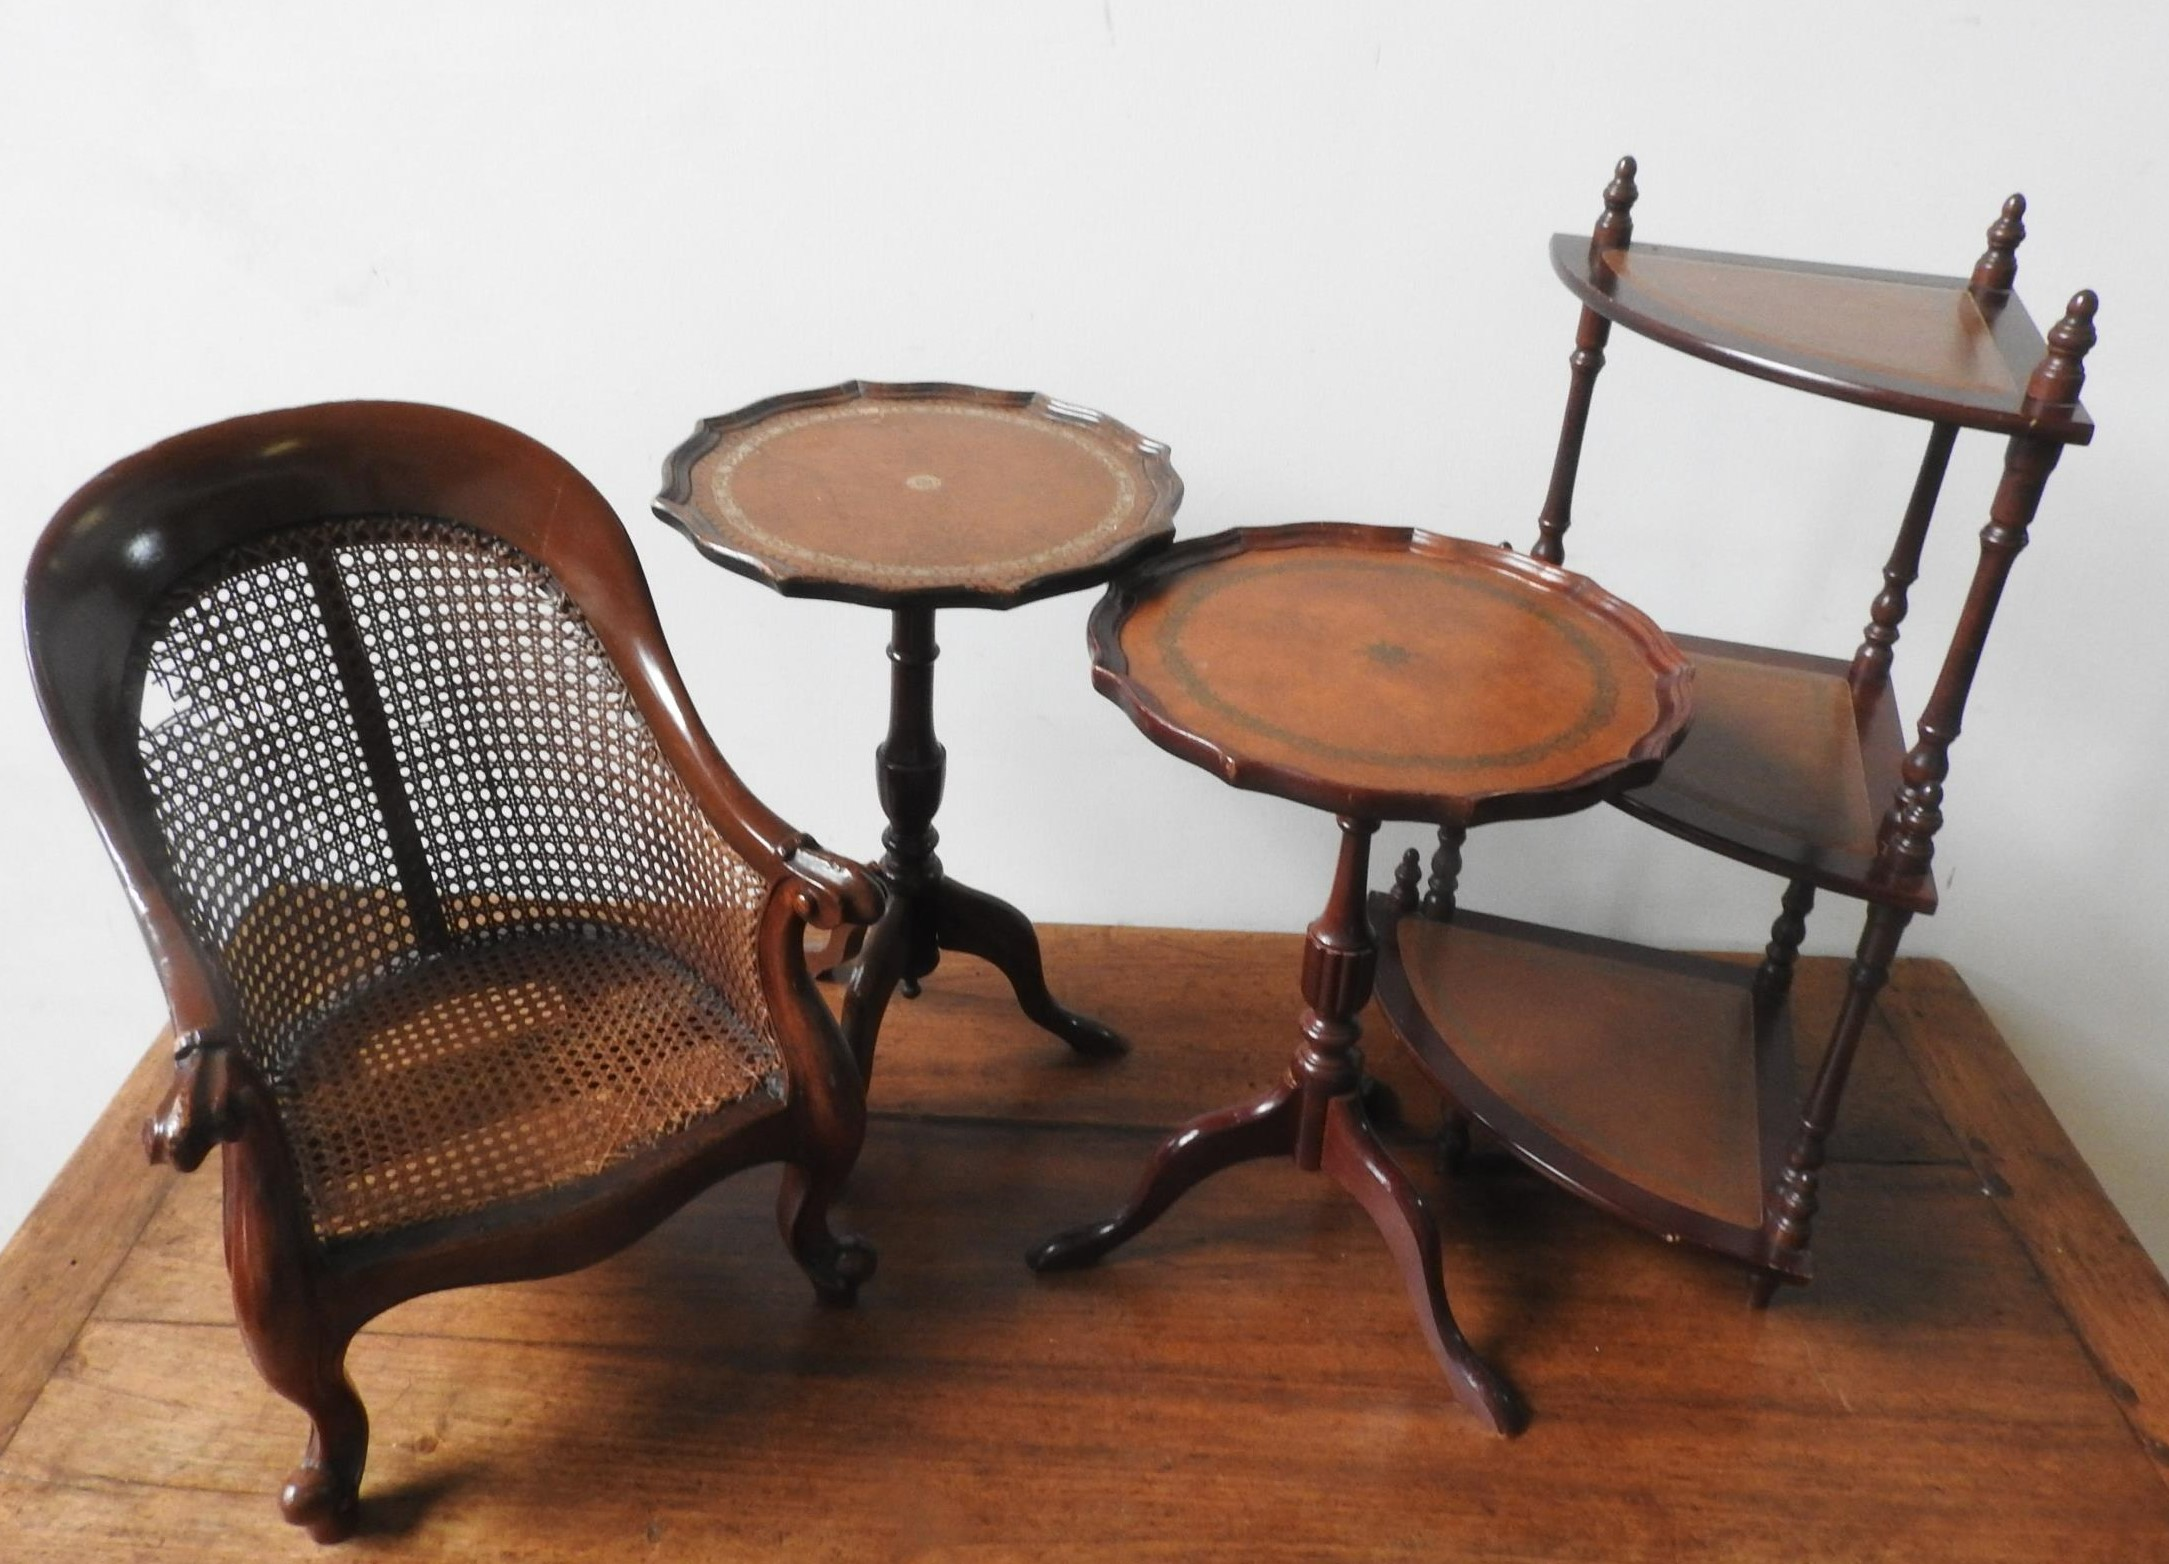 A CHILD'S MAHOGANY FRAMED CANE ARMCHAIR, TWO 20TH CENTURY WINE TABLES AND 3-TIER CORNER WHAT NOT, - Image 2 of 2